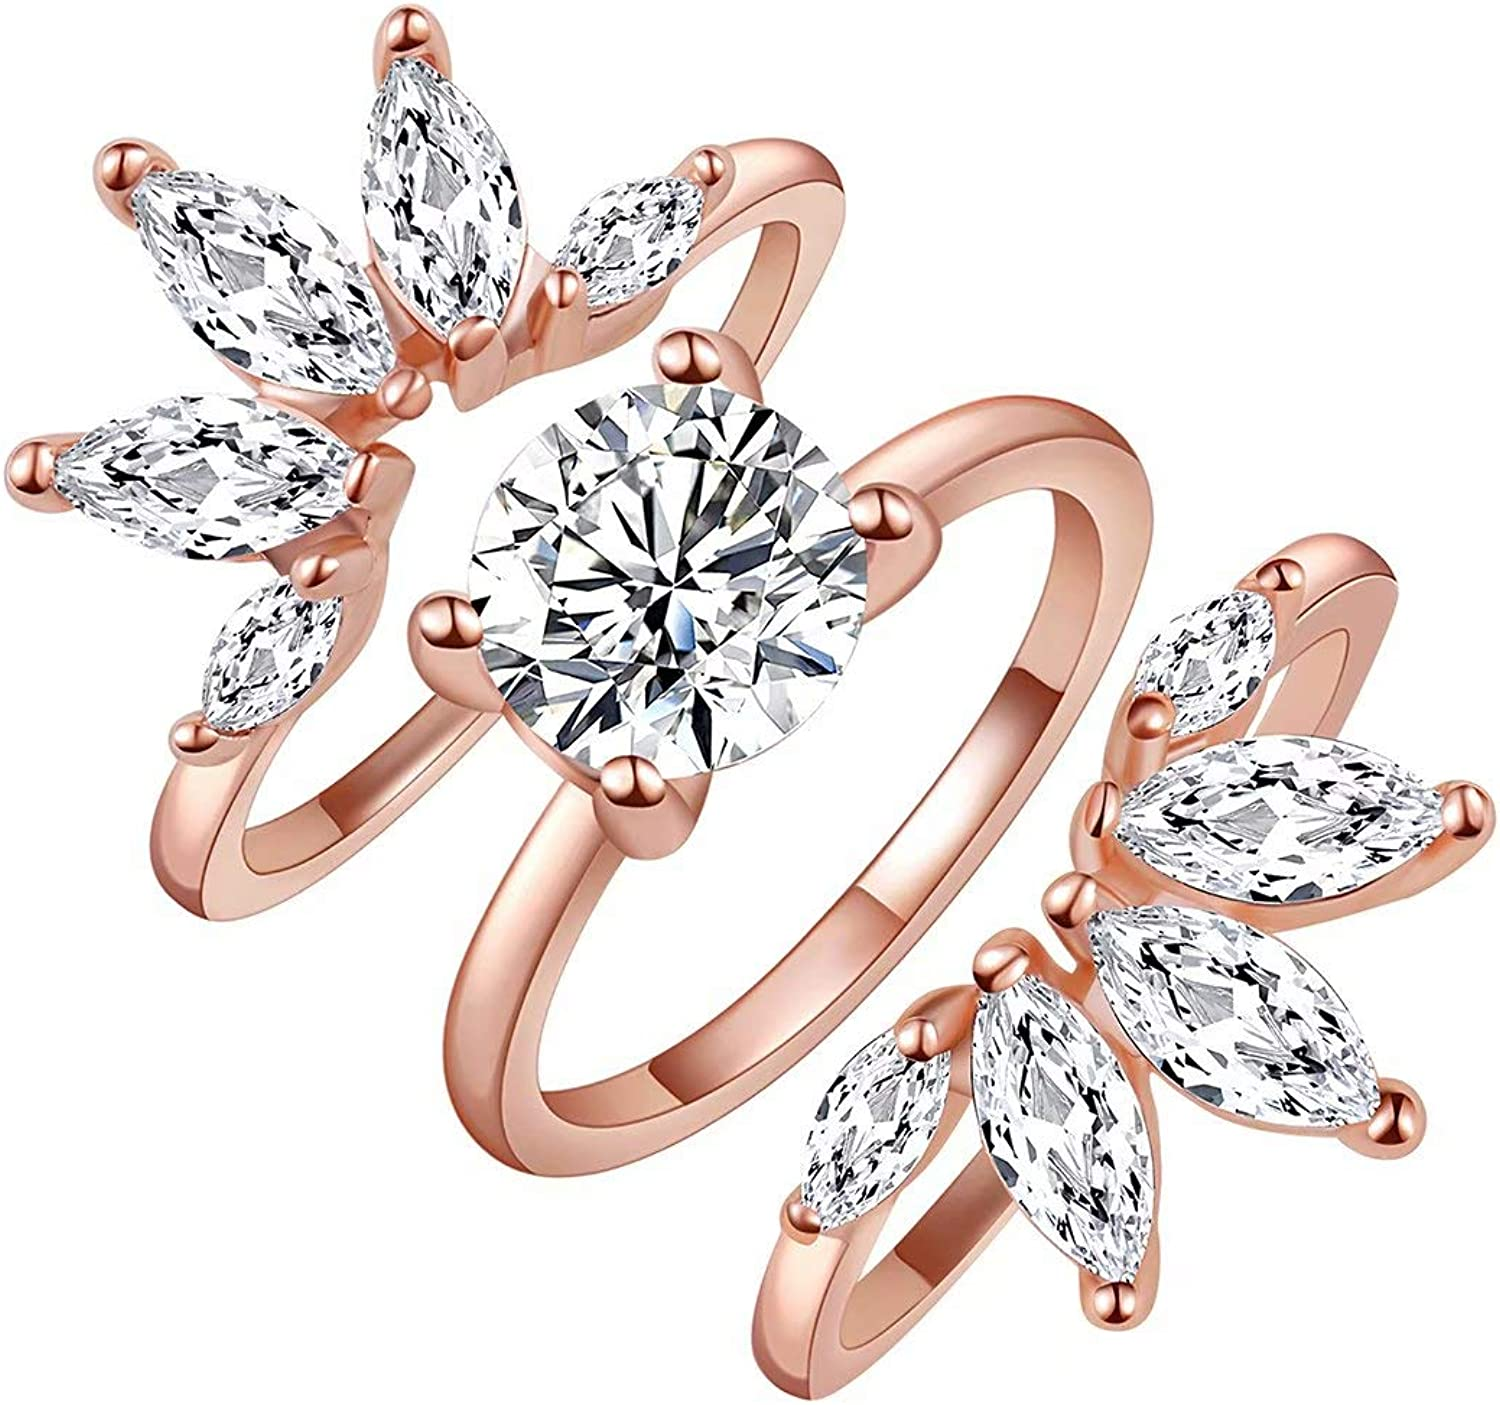 Amazon Com Sr Rings Rose Gold Rings 3pcs Enhancers Rings Set Cubic Zirconia Bands Ring Morganite Wedding Engagement Rings Floral Marquise Guard Rings For Women Girl Size 5 9 Jewelry